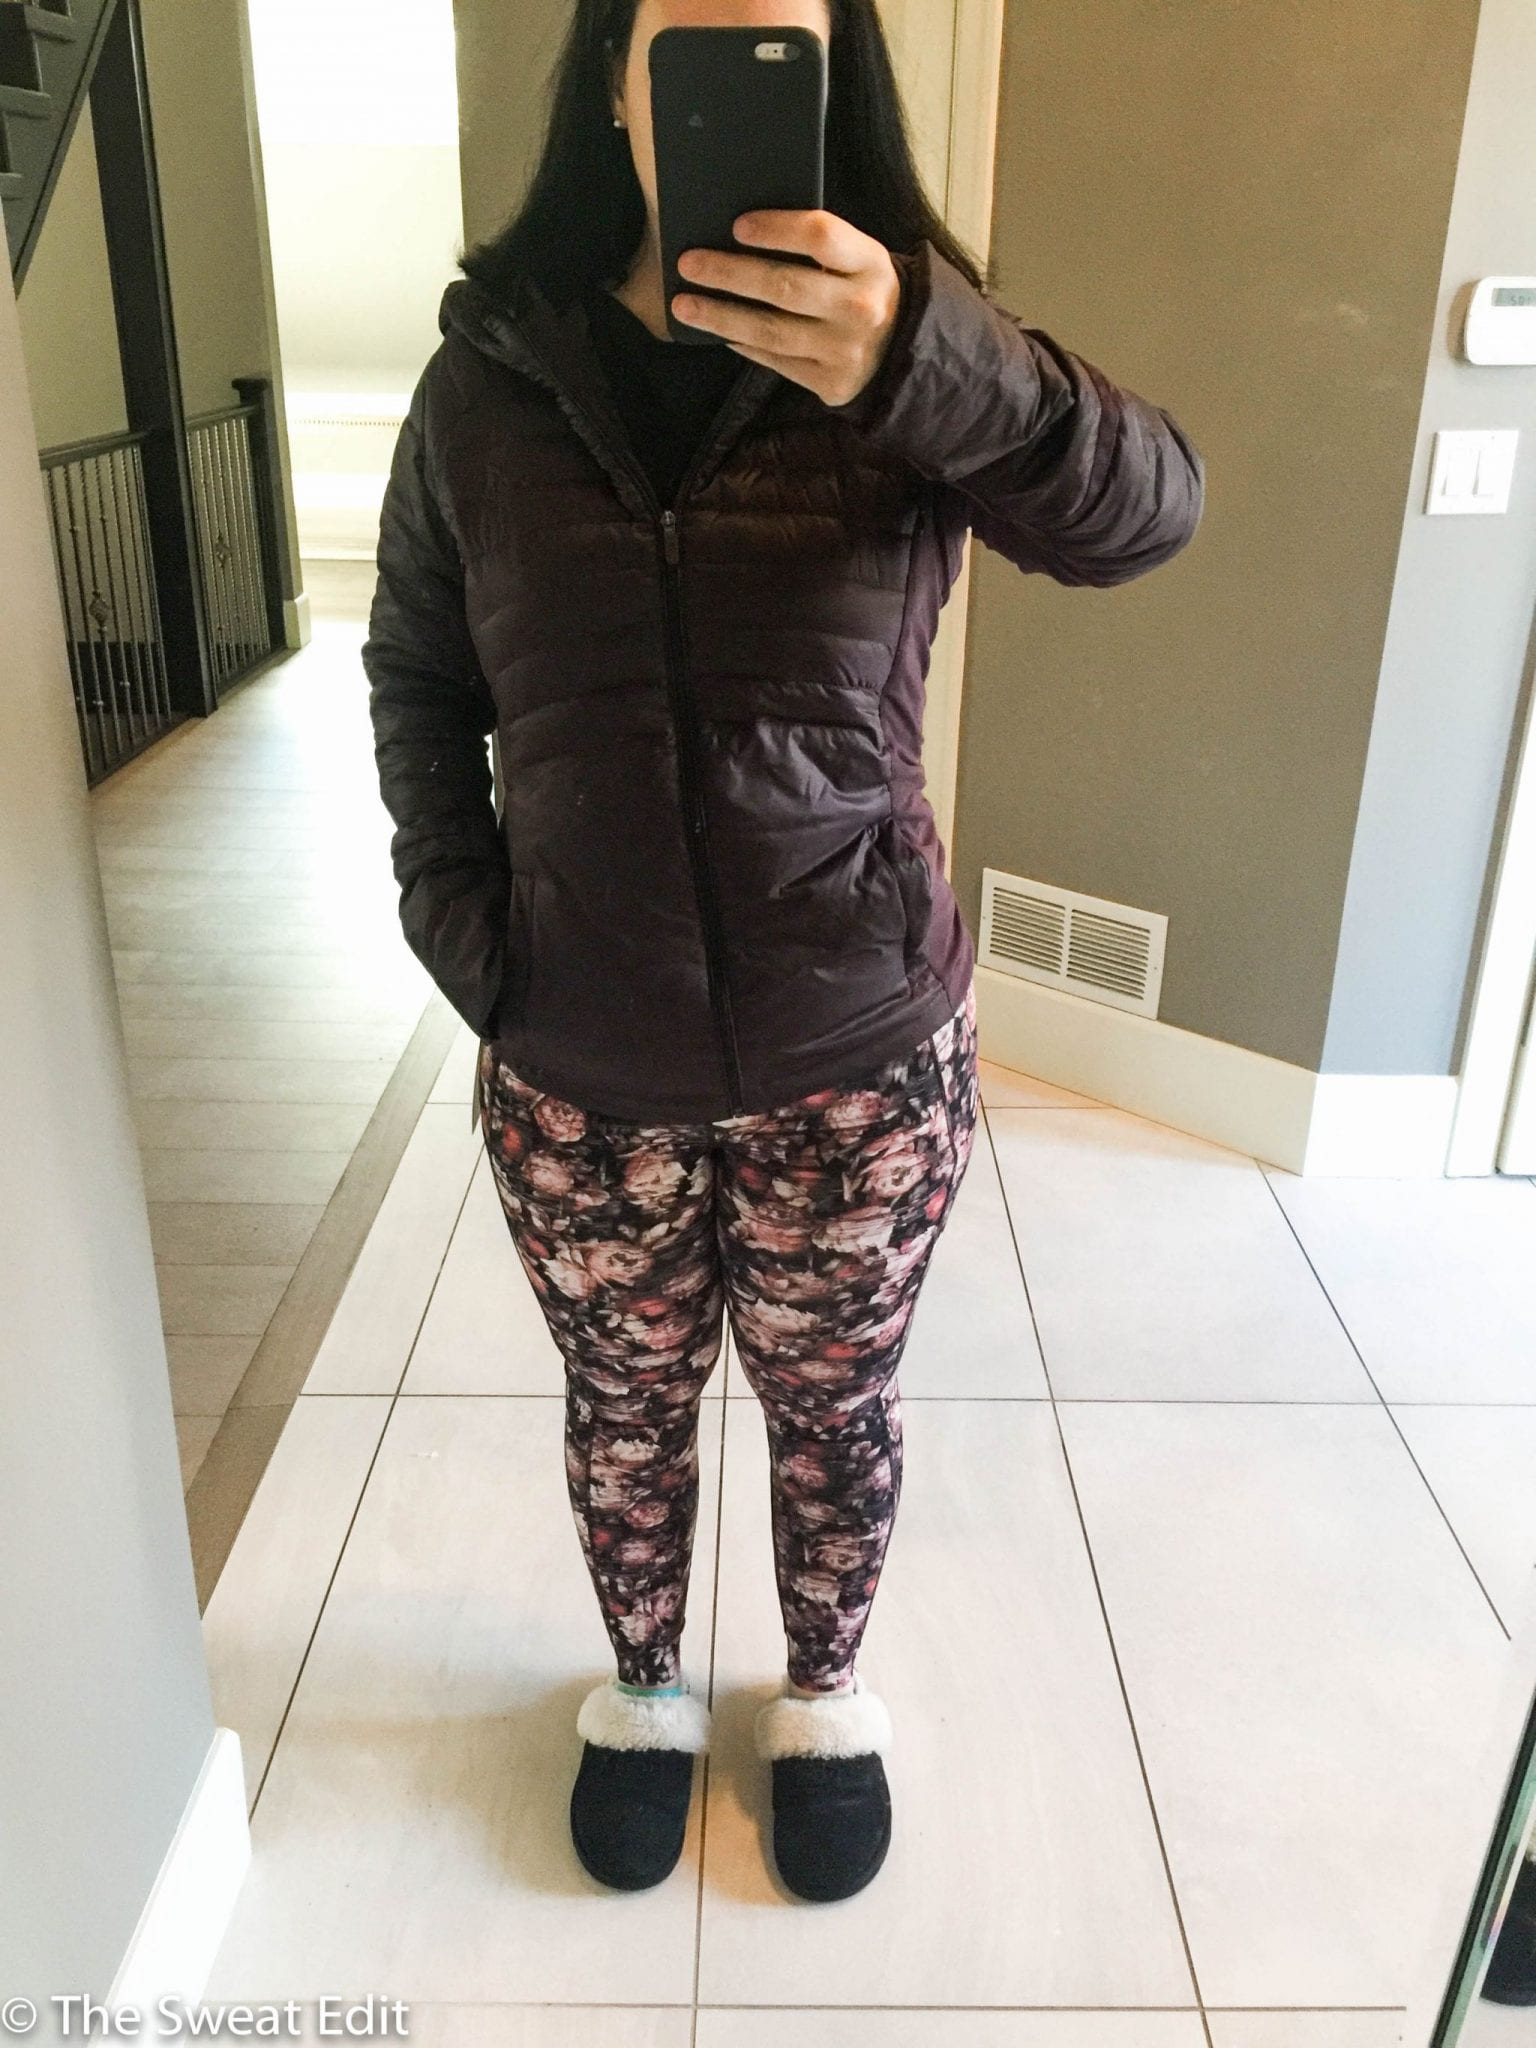 Lululemon Black Cherry Down For A Run Jacket and Peony Fast & Free 7/8 Tights